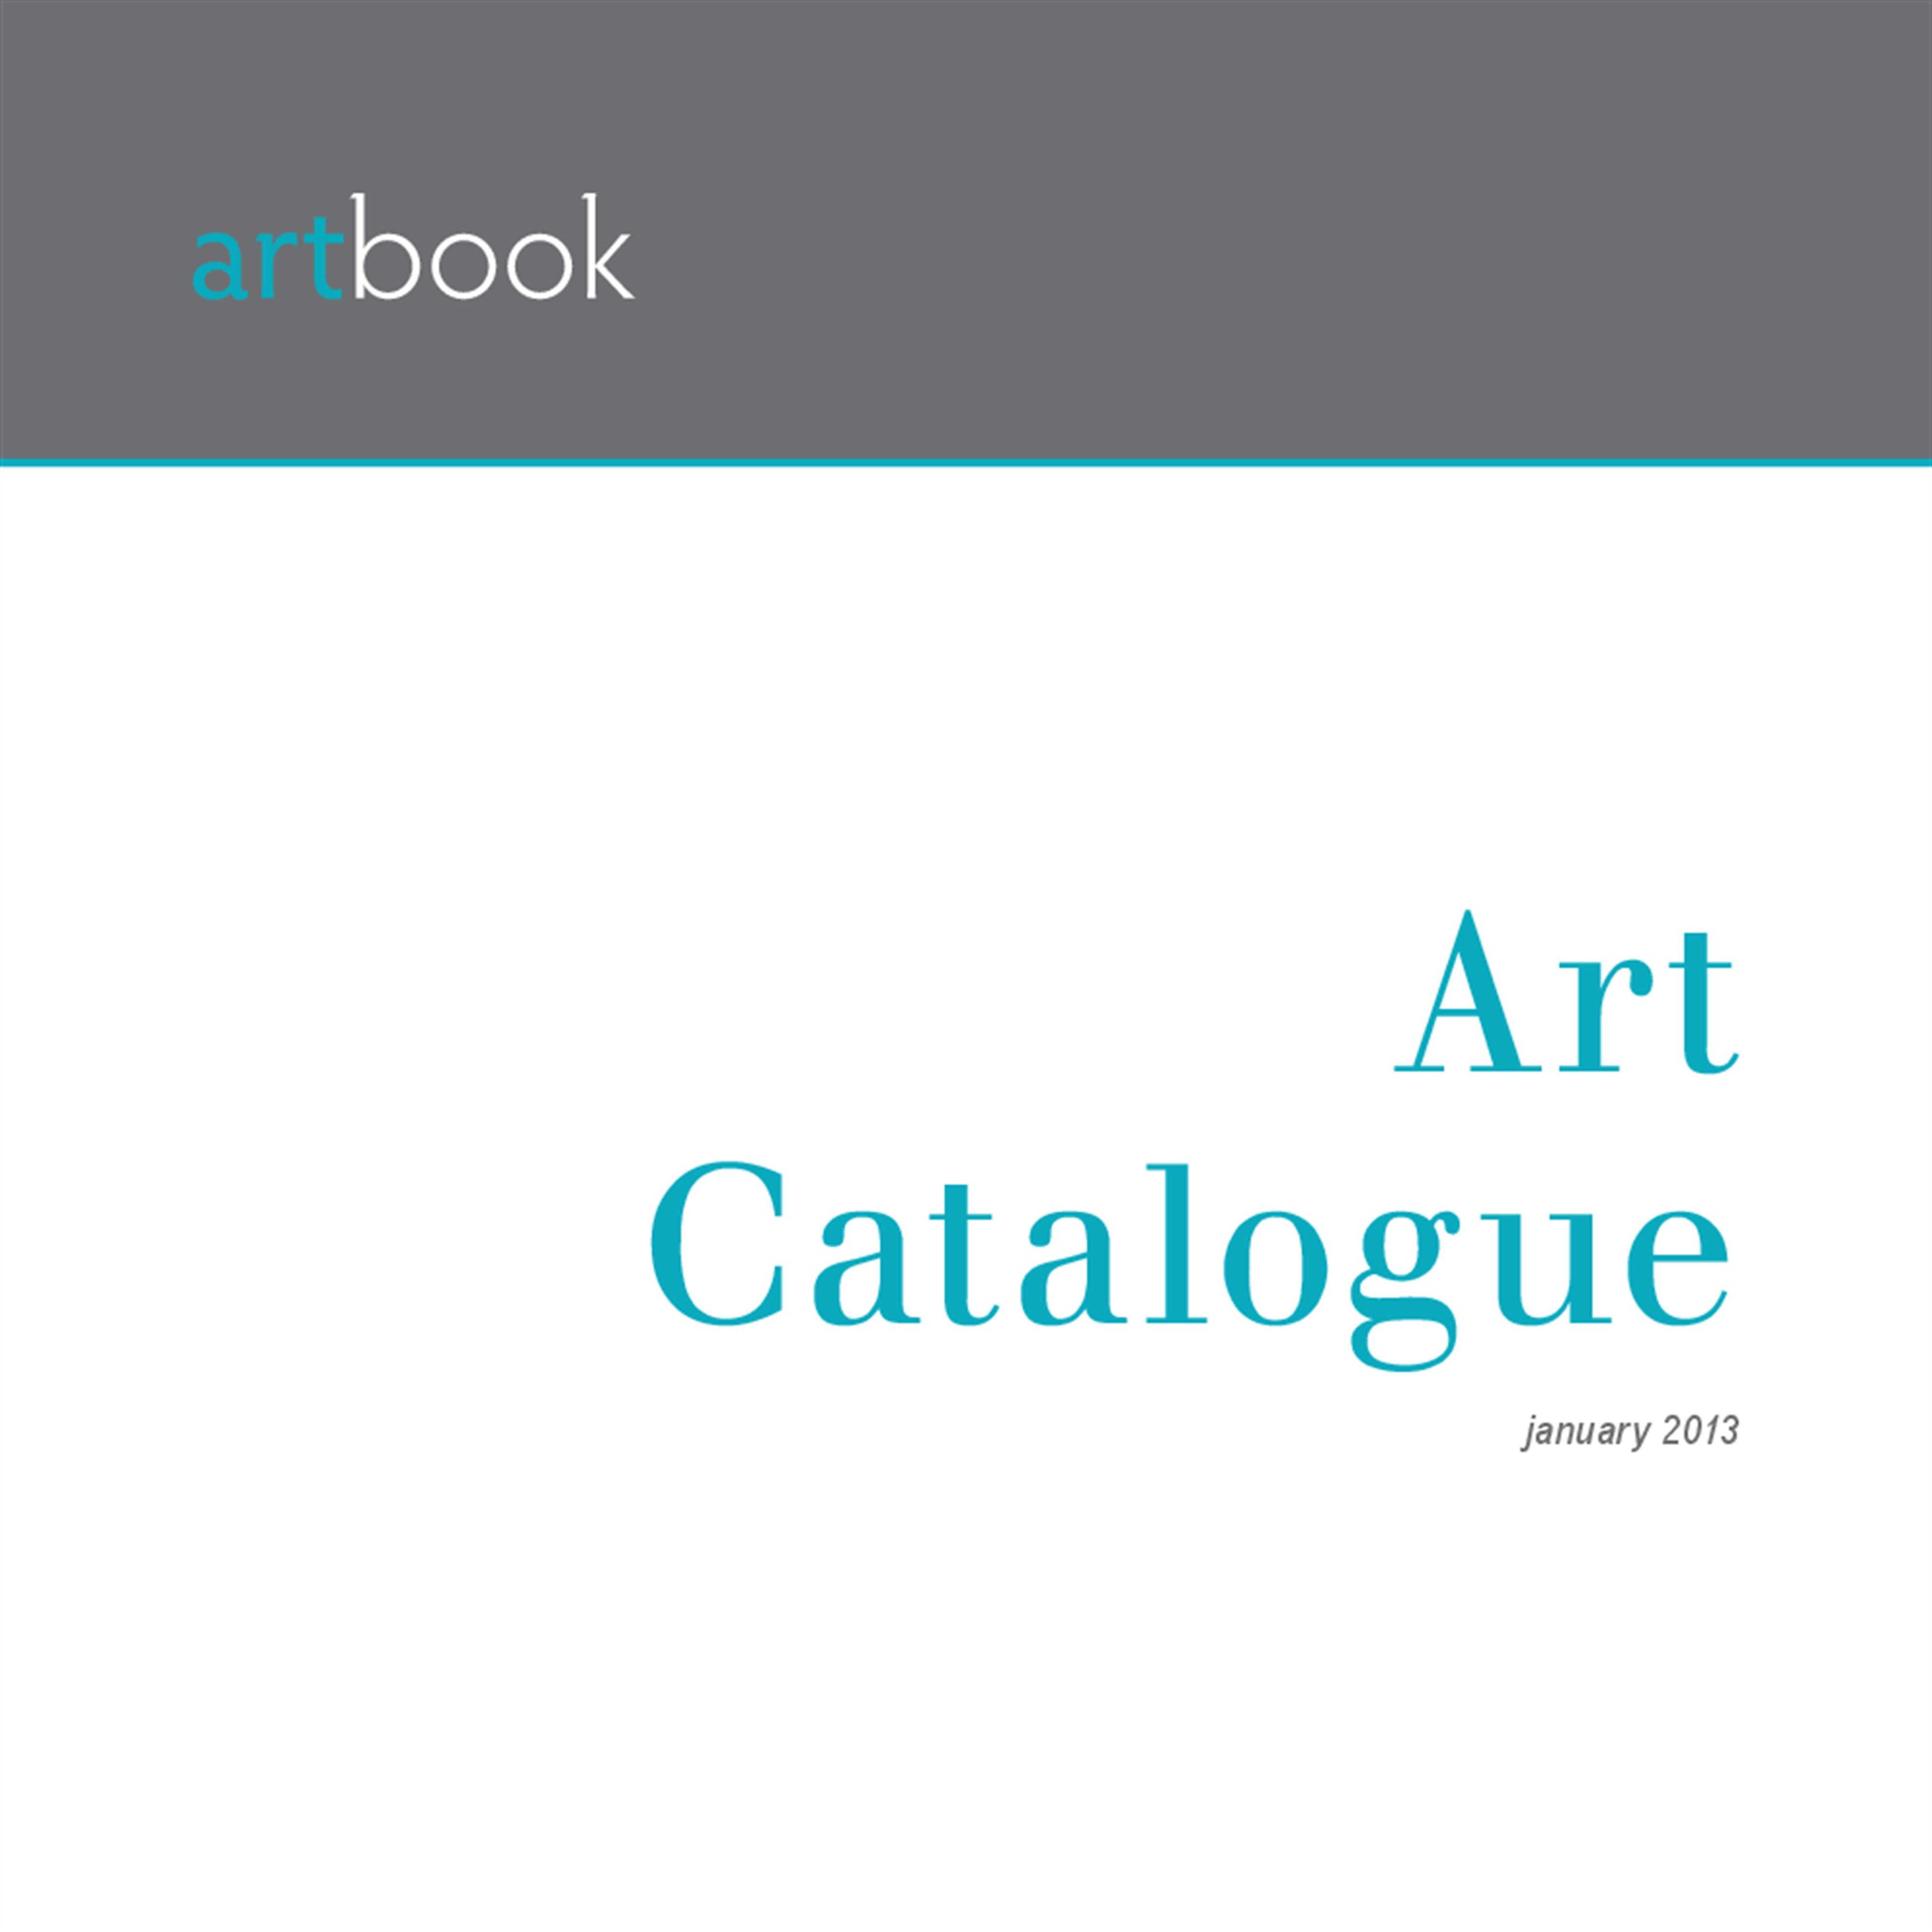 Download Free Art Catalogue InDesign template and create your ...